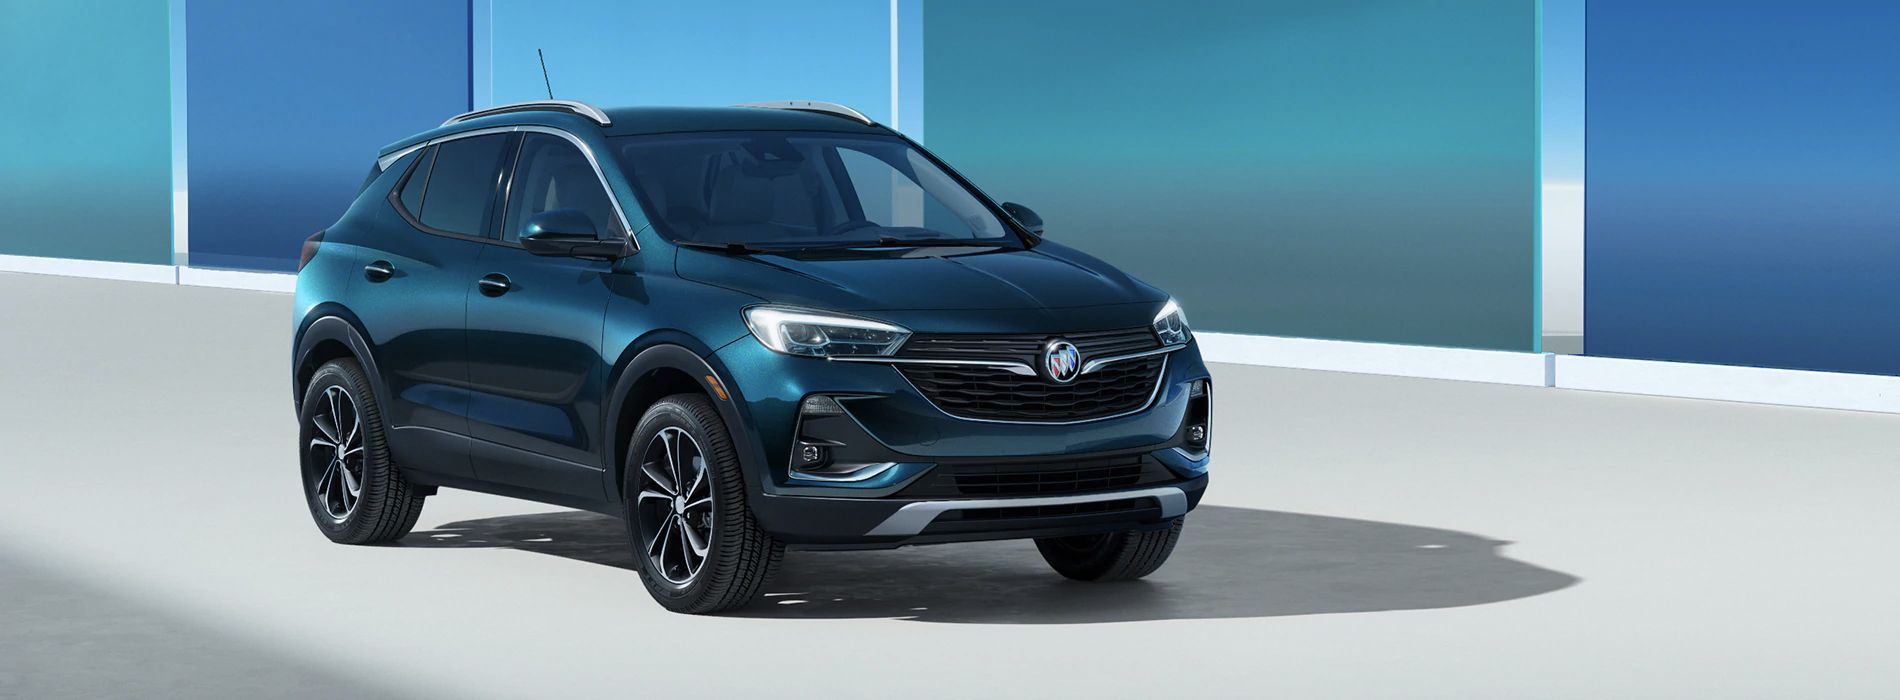 2020 Buick Encore Gx Priced Starting At $25,000 New 2022 Buick Encore Essence Engine, Awd, Msrp